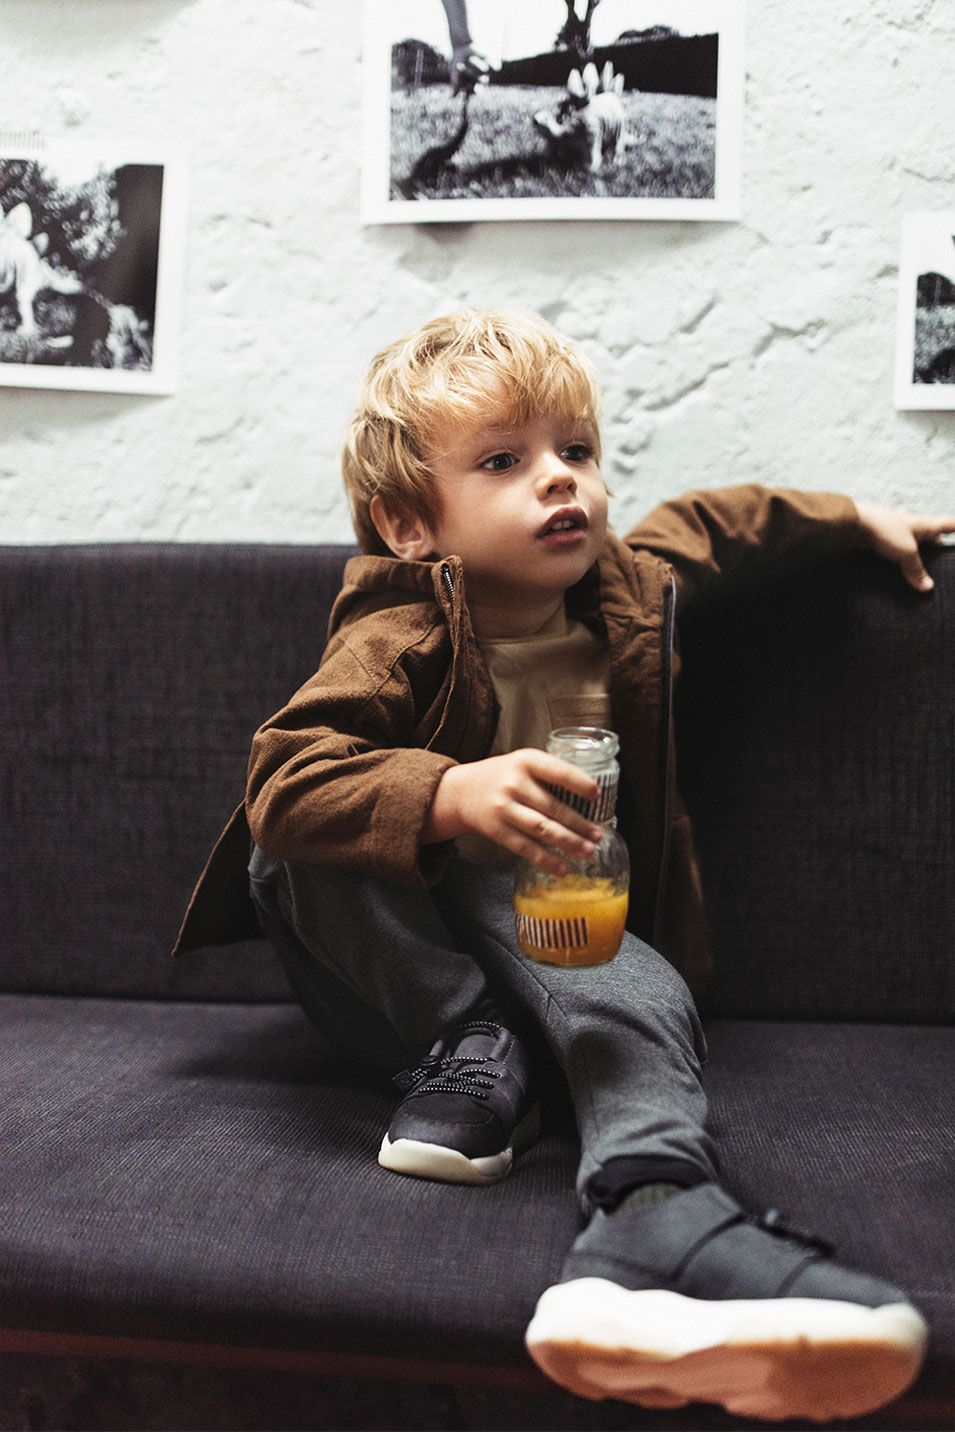 Image 2 Of Needlecord Jacket T Shirt With Pocket Zip Trousers Leather Sneakers From Zara Baby Outfit Junge Niedliche Kinder Cool Baby